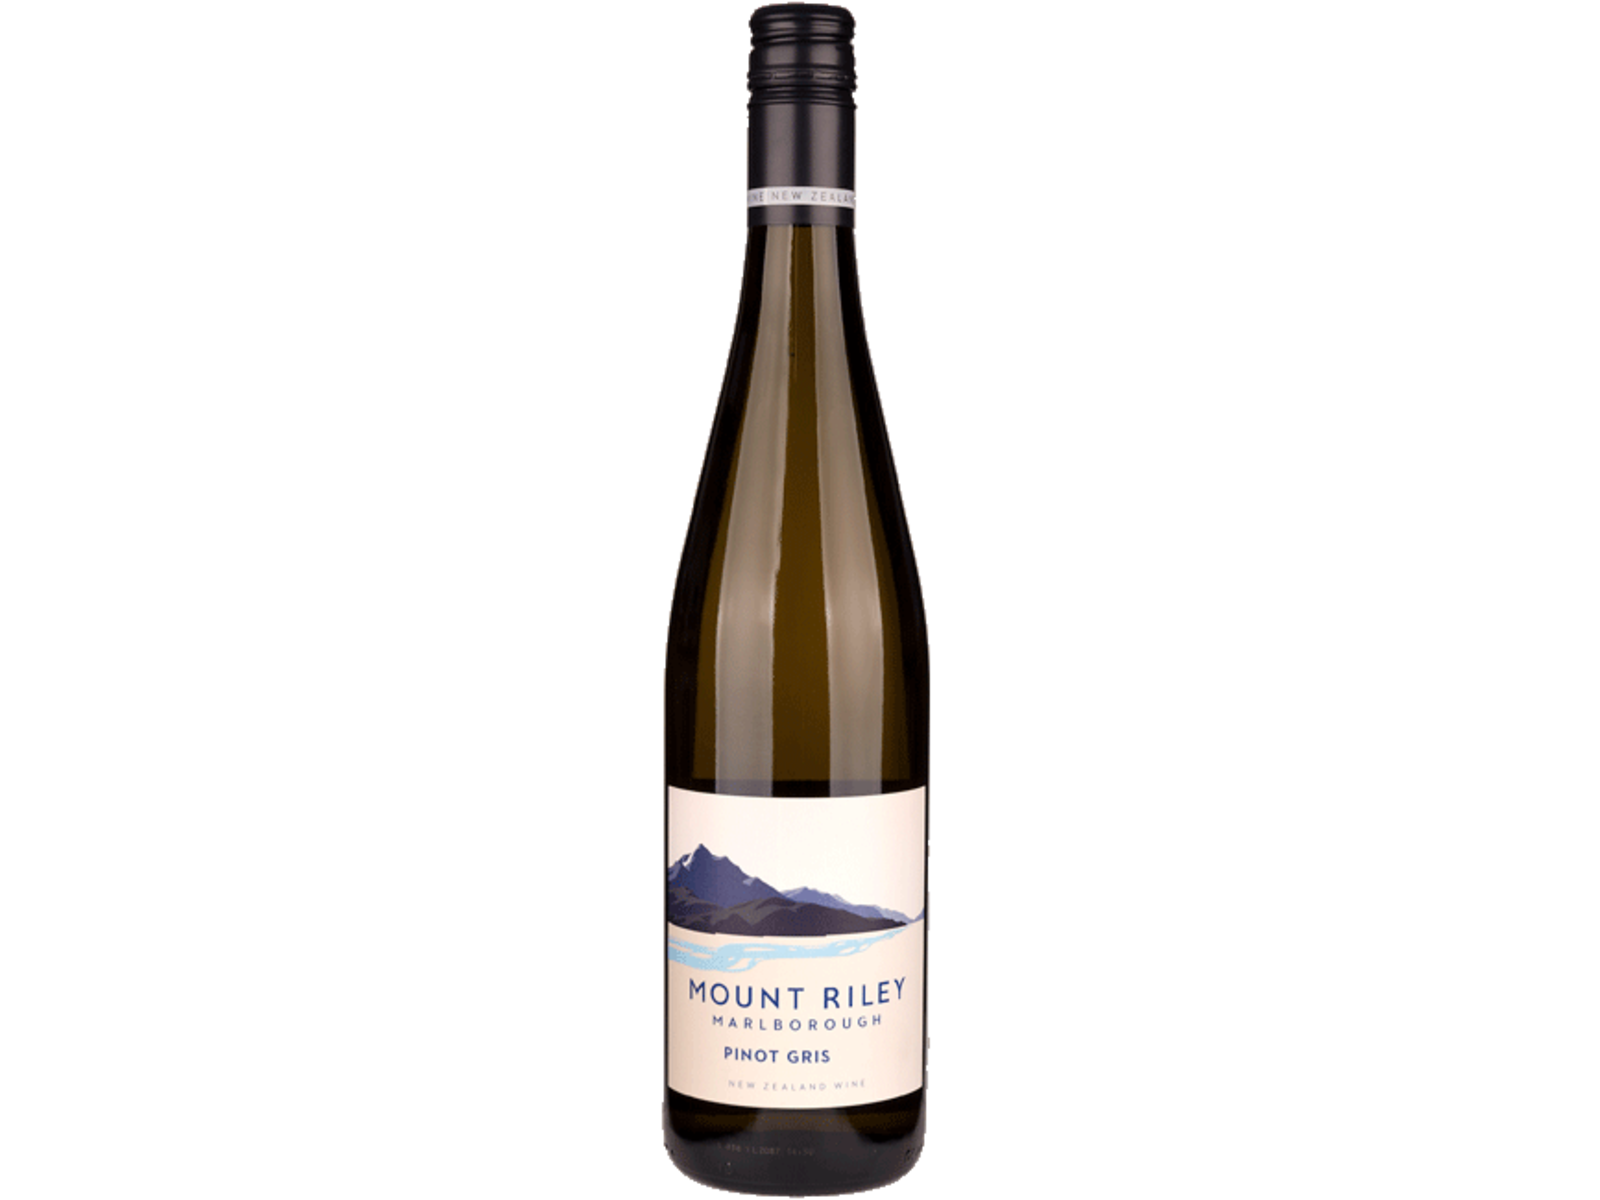 Mount Riley Mount Riley Pinot Gris